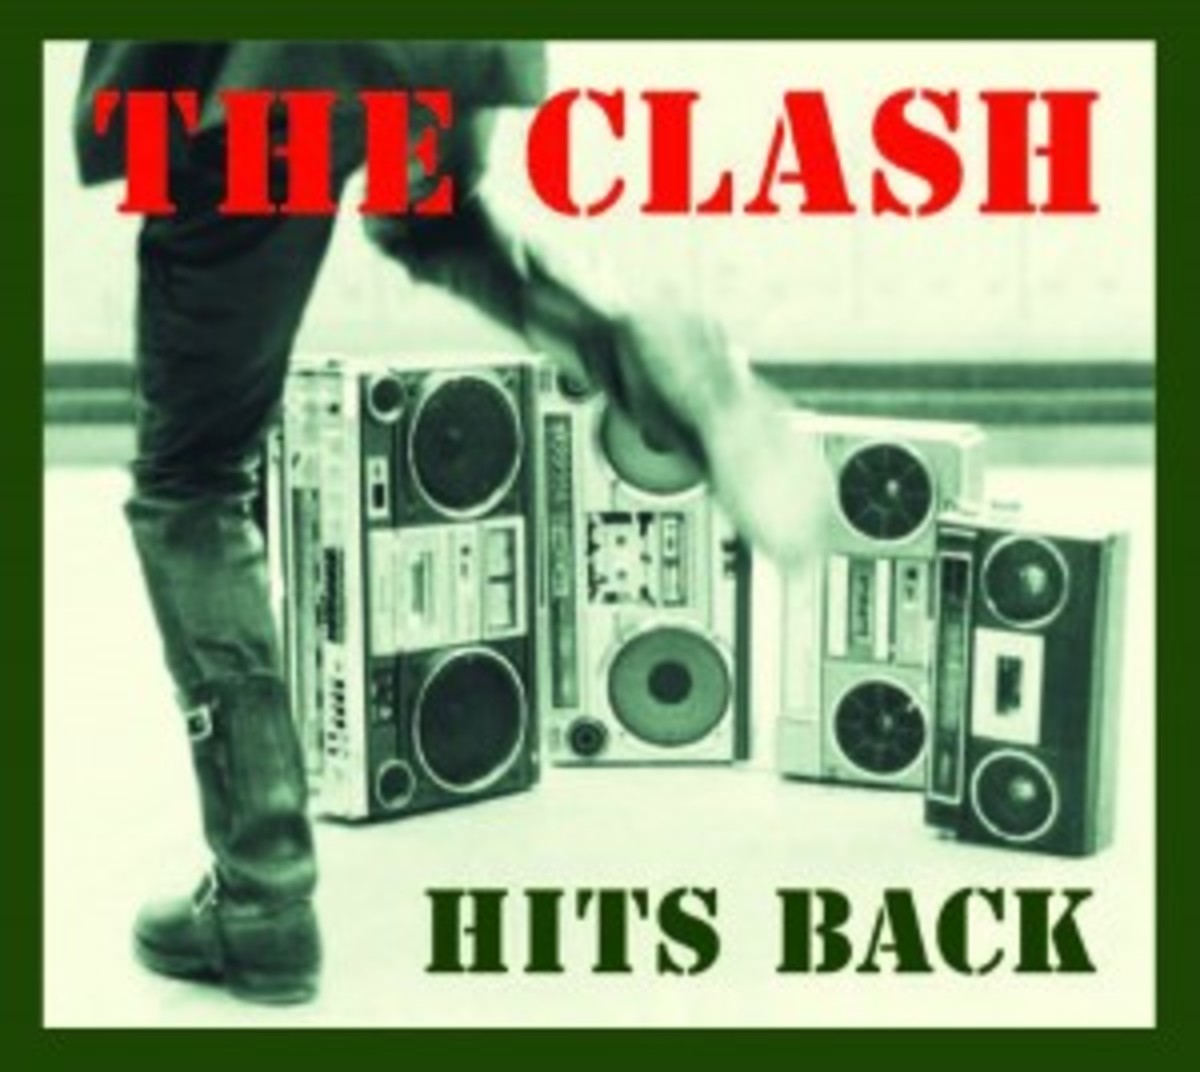 The surviving members of The Clash discussed the forthcoming double-CD set The Clash Hits Back and the box set Sound System during an interview recently on XFM London.